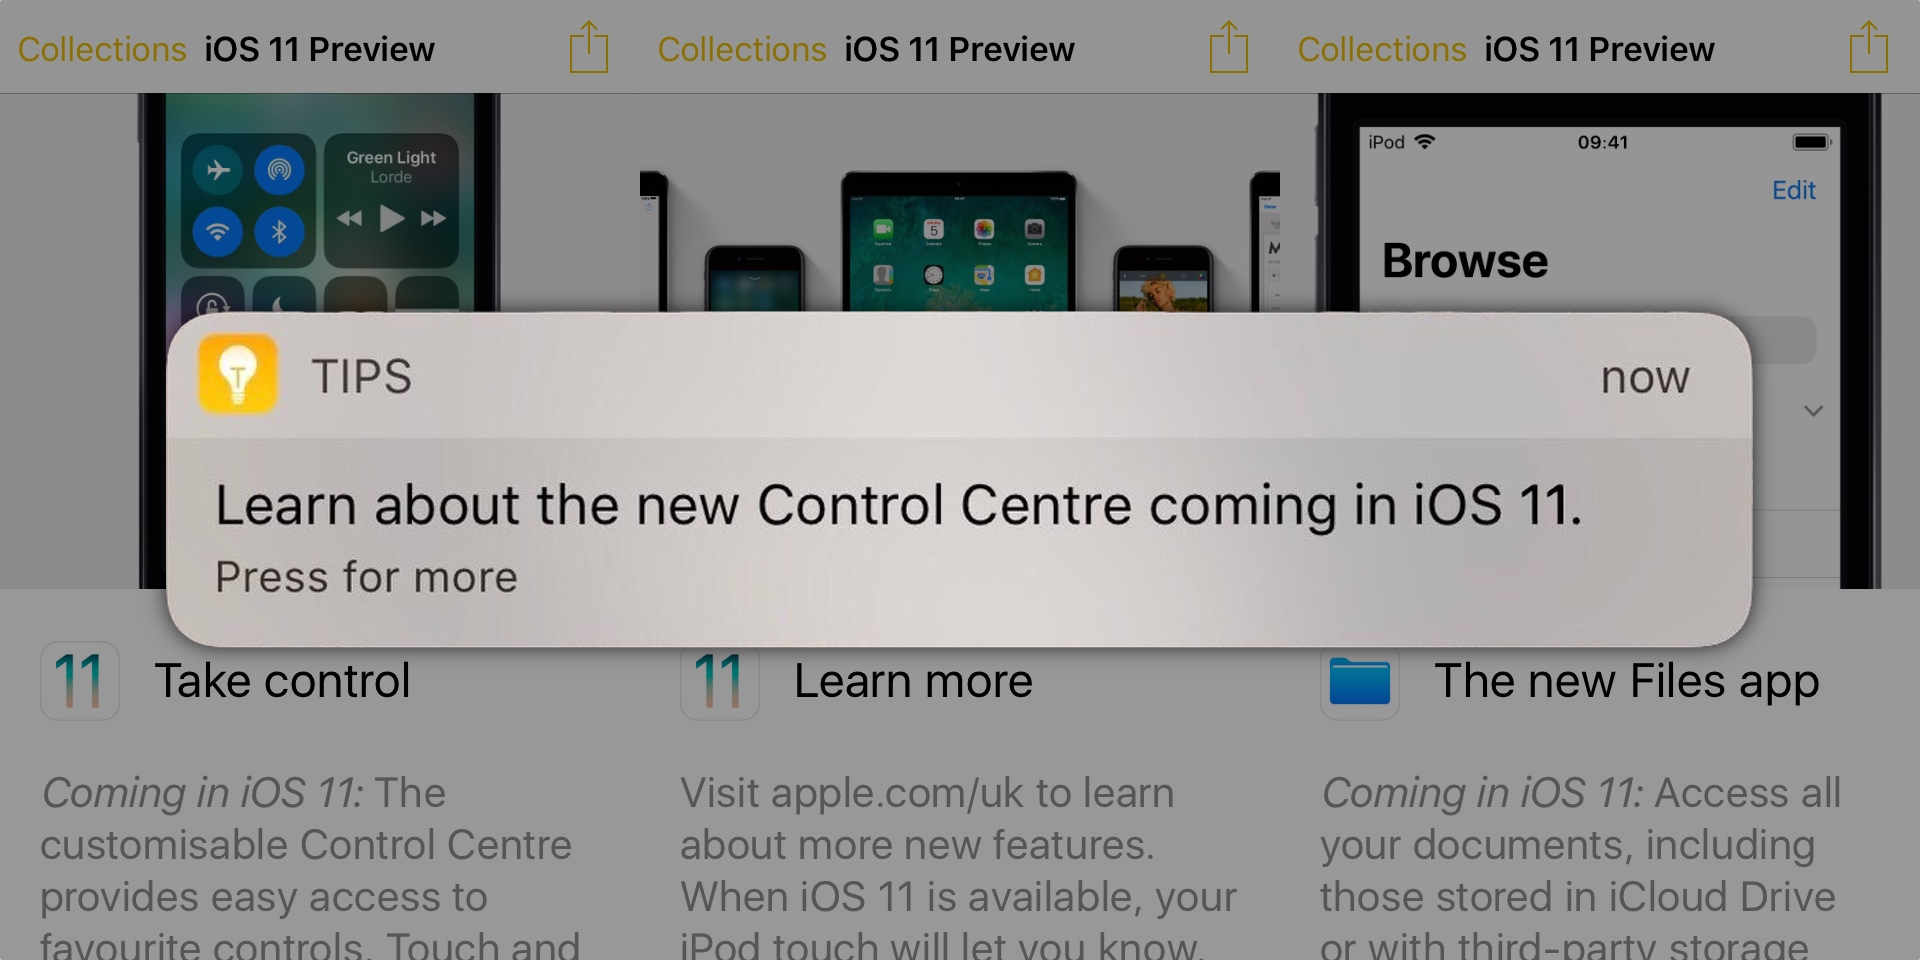 Apple promoting iOS 11 features to iOS 10 users with Tips alerts, ahead of September iPhone event